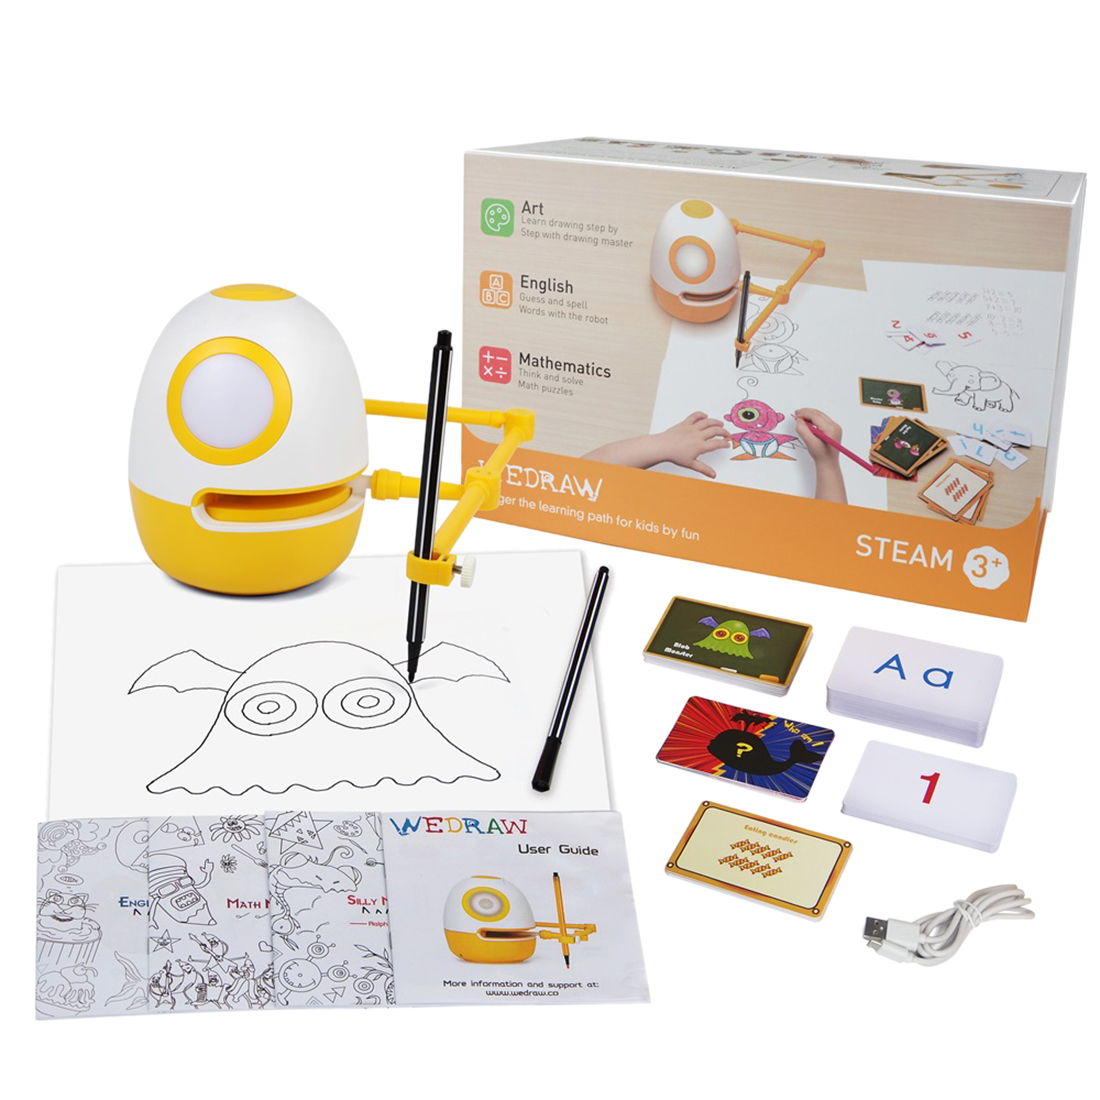 Wedraw Eggy New Children Inductive Intelligence Drawing Robot Genius Kit Early Learning Educational Tech Toys For Christmas Gift